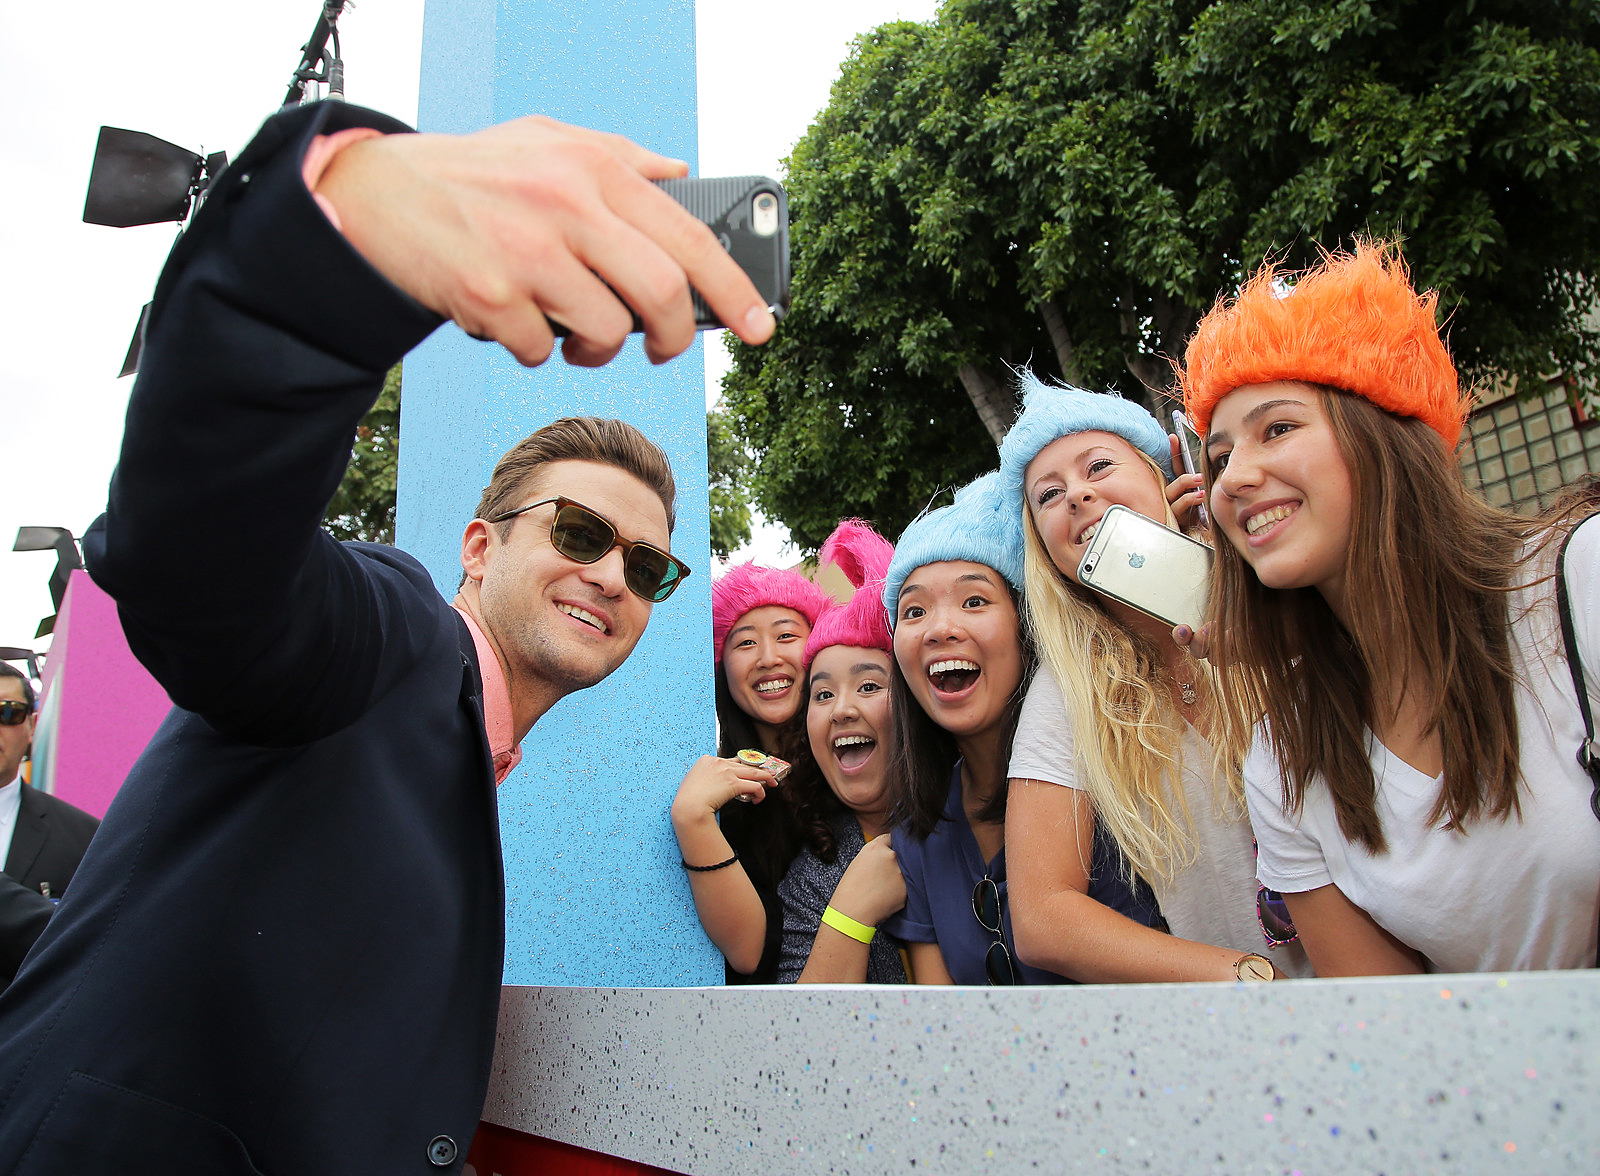 Justin Timberlake and fans at the Trolls film premiere in Los Angeles, on Oct. 23, 2016.